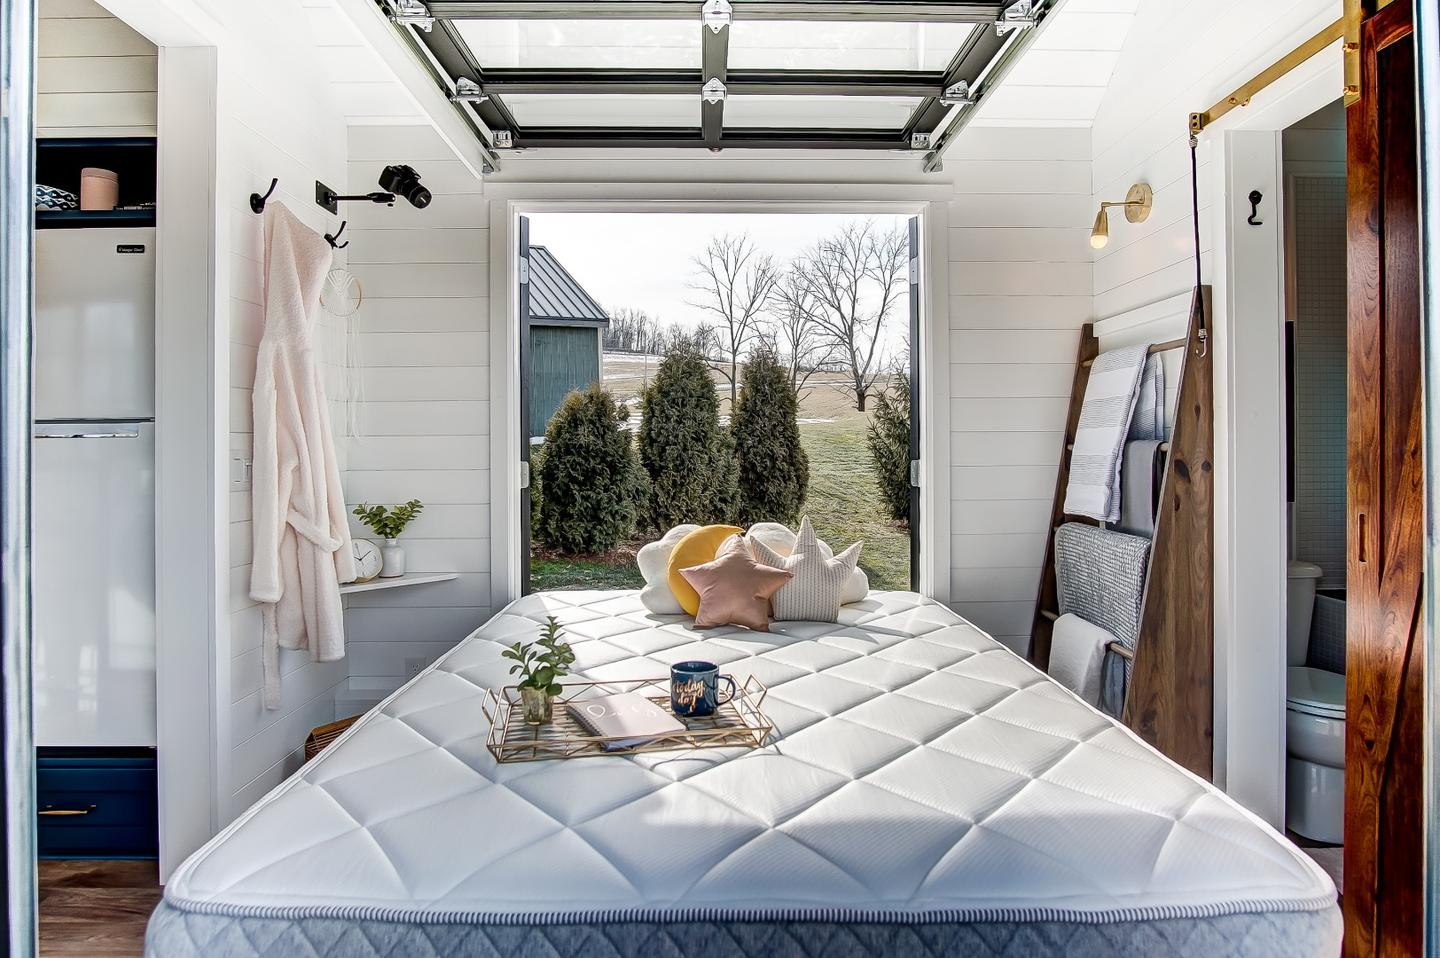 The Allswell Tiny Home's bedroom opens to the outside with a garage-style door